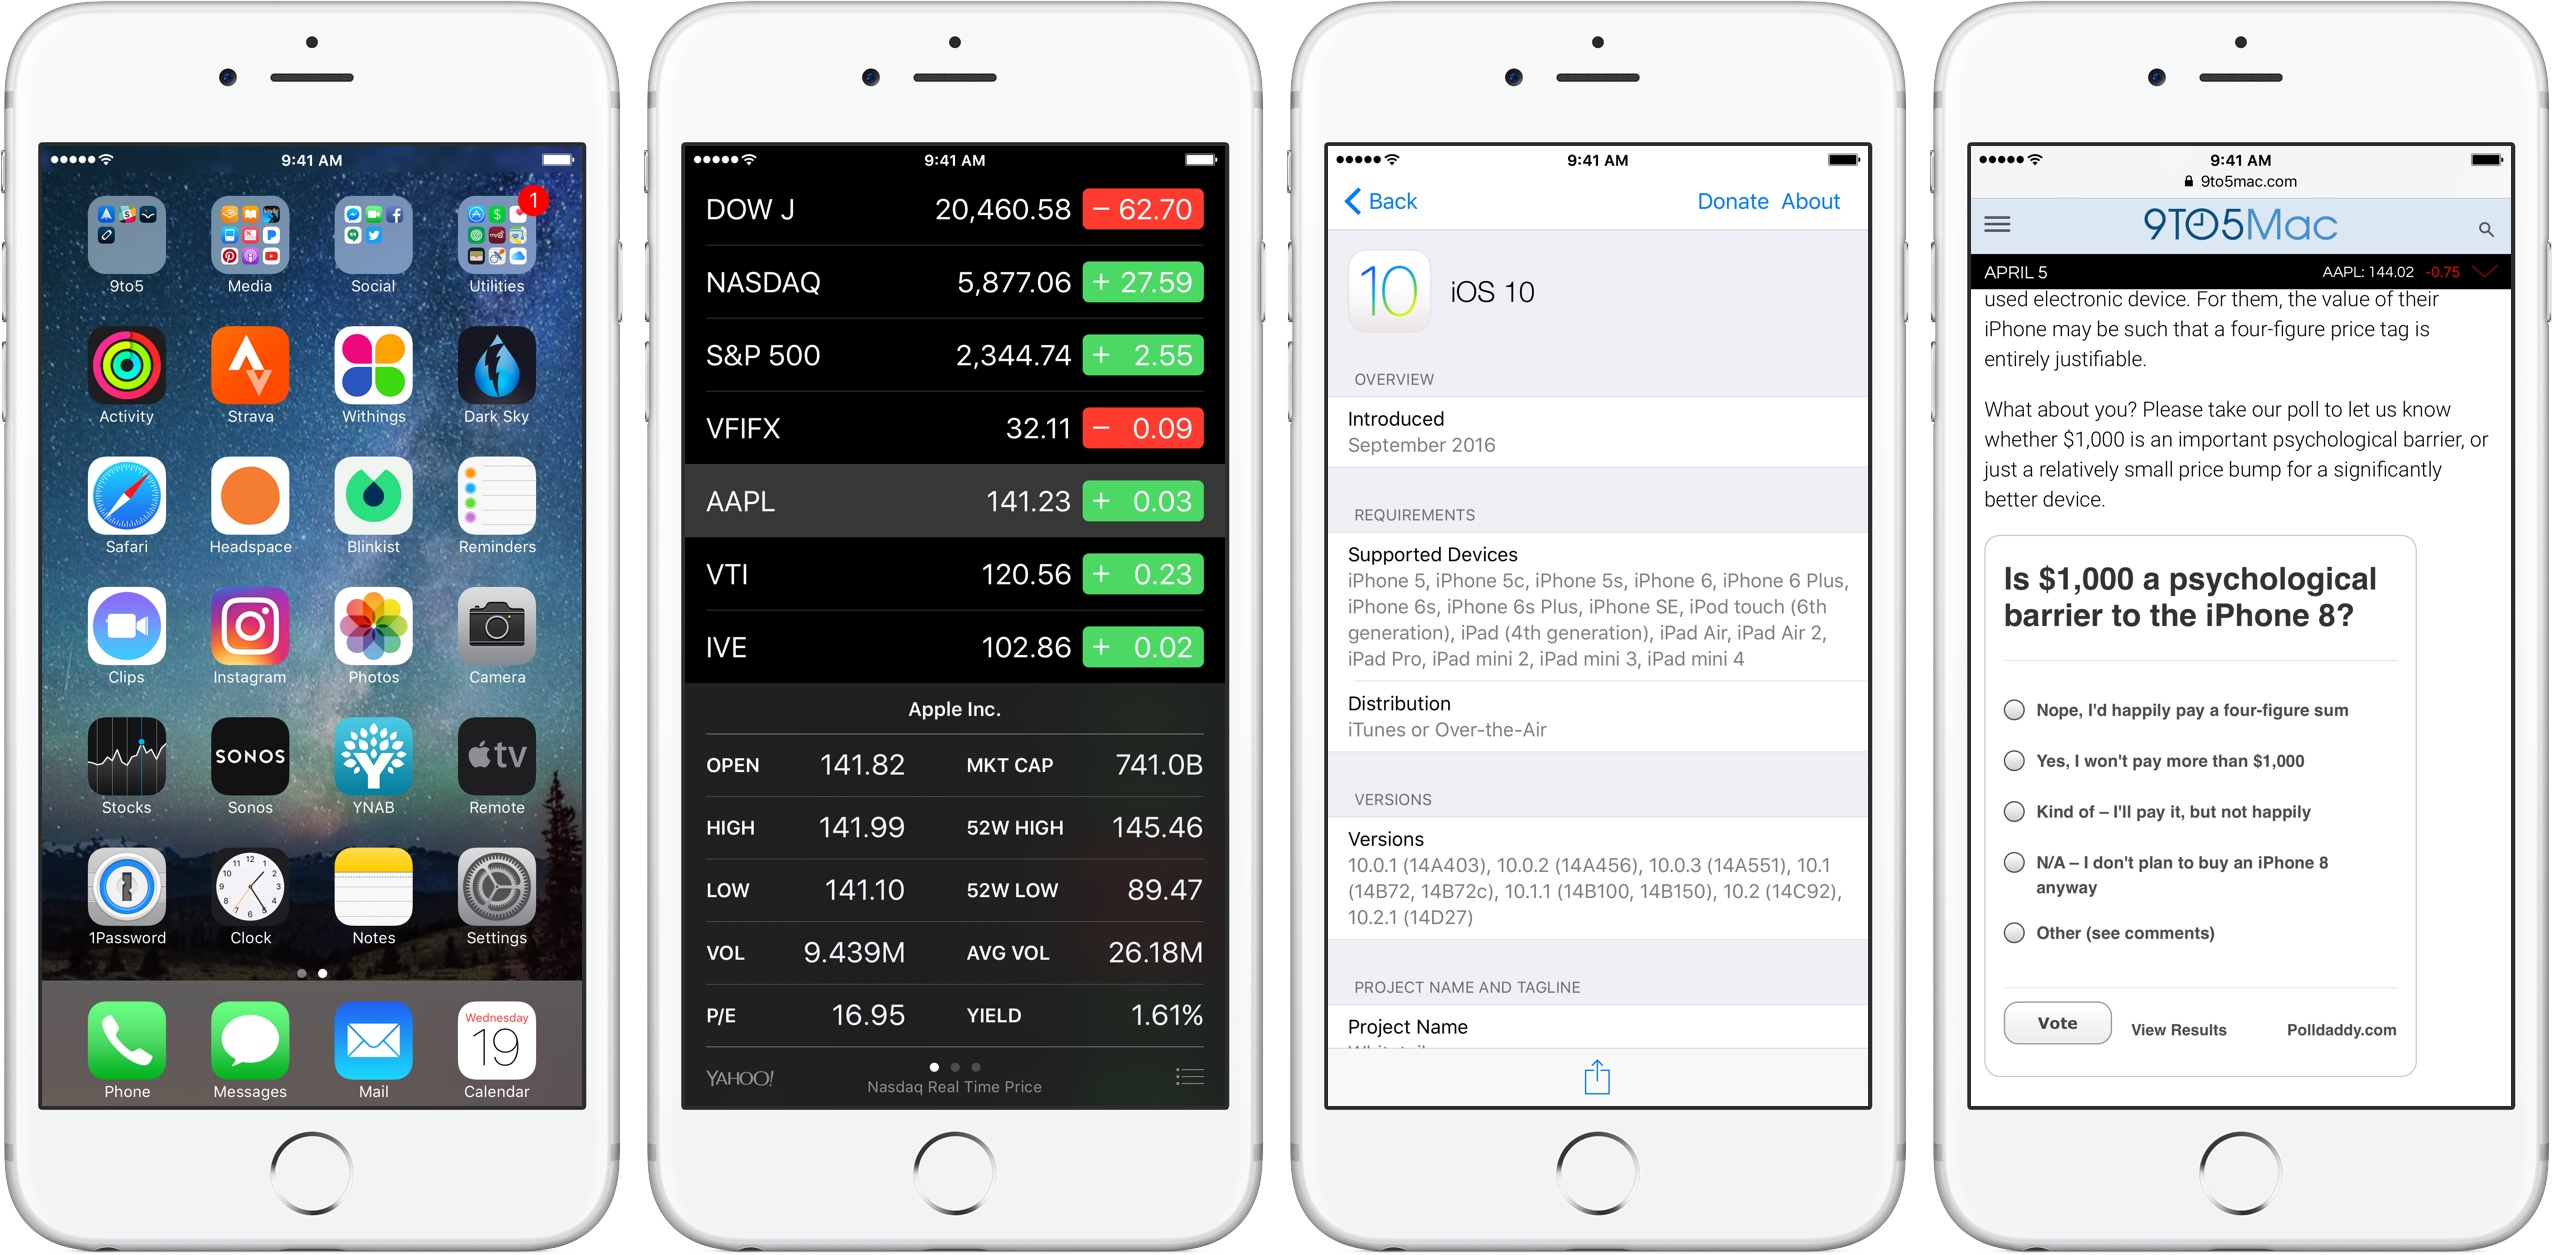 Image showing screenshots of iOS Home screen, Stocks app, Mactracker app, and 9to5Mac article